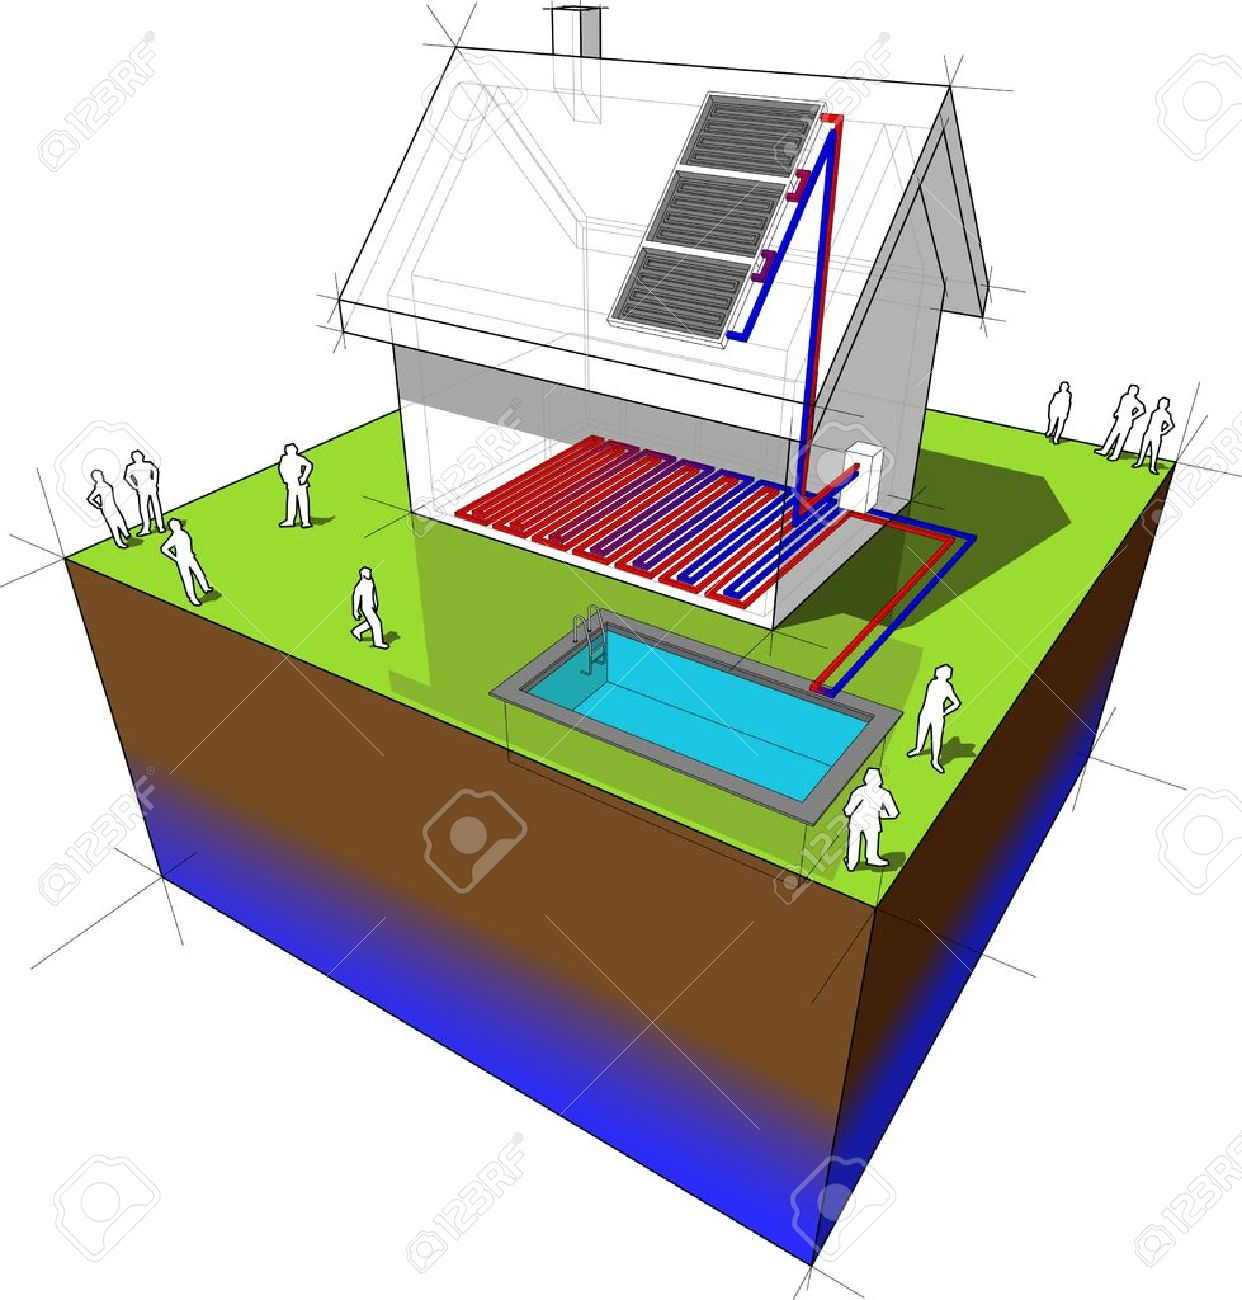 Diagram Of A Detached House With Floor Heating And Swimming Pool Solar Panel Diagrams Heated By Stock